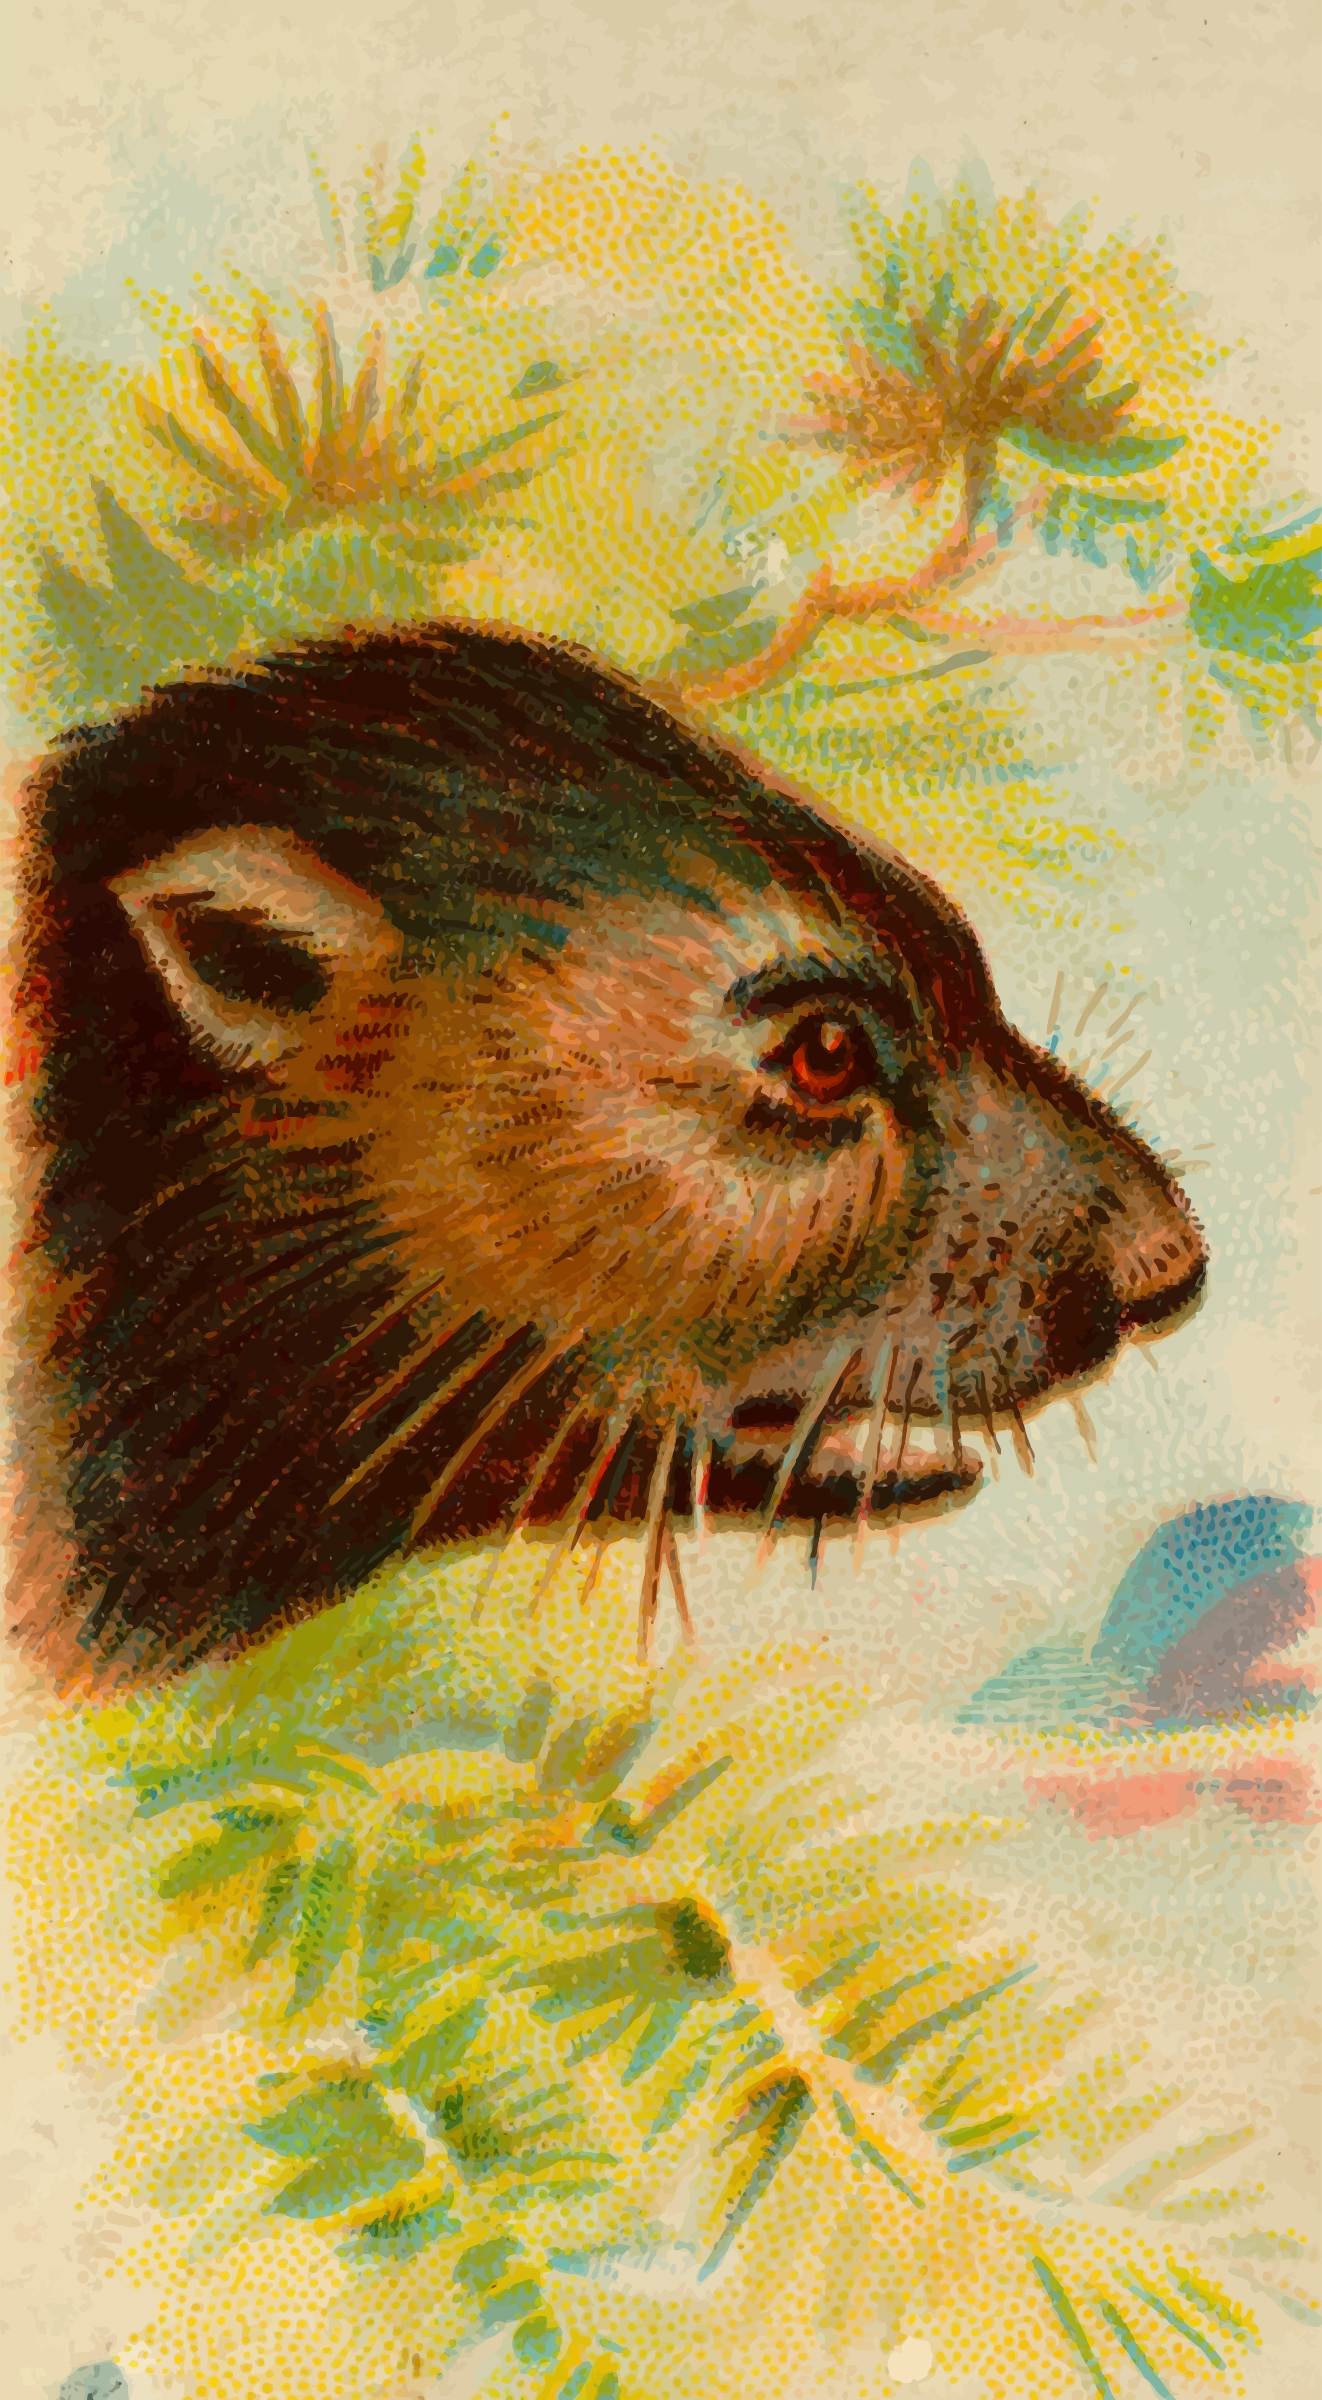 Cigarette card - Tasmanian devil by Firkin